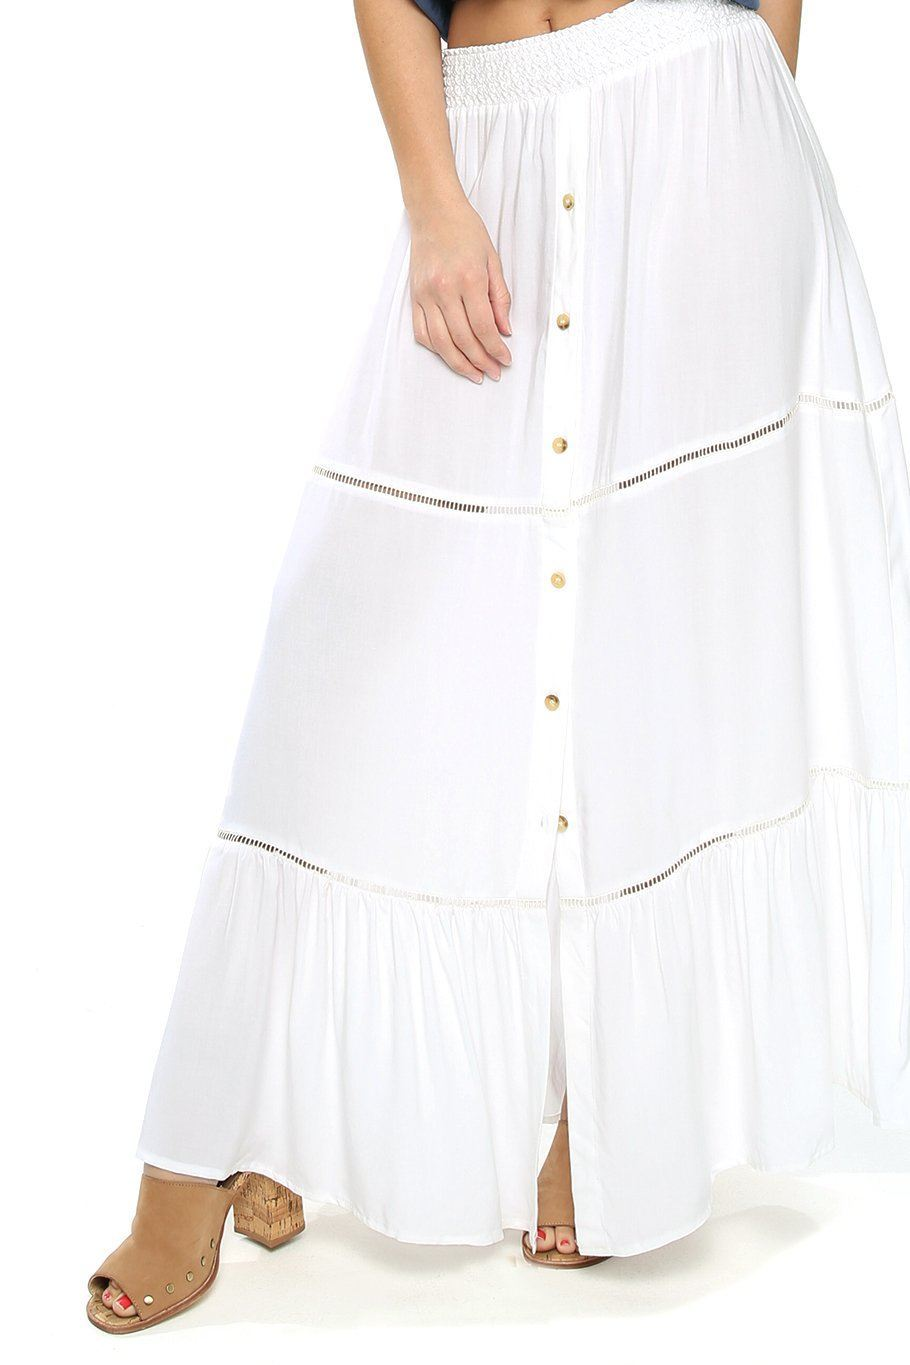 Opal Smocking Maxi Skirt - White - Shore